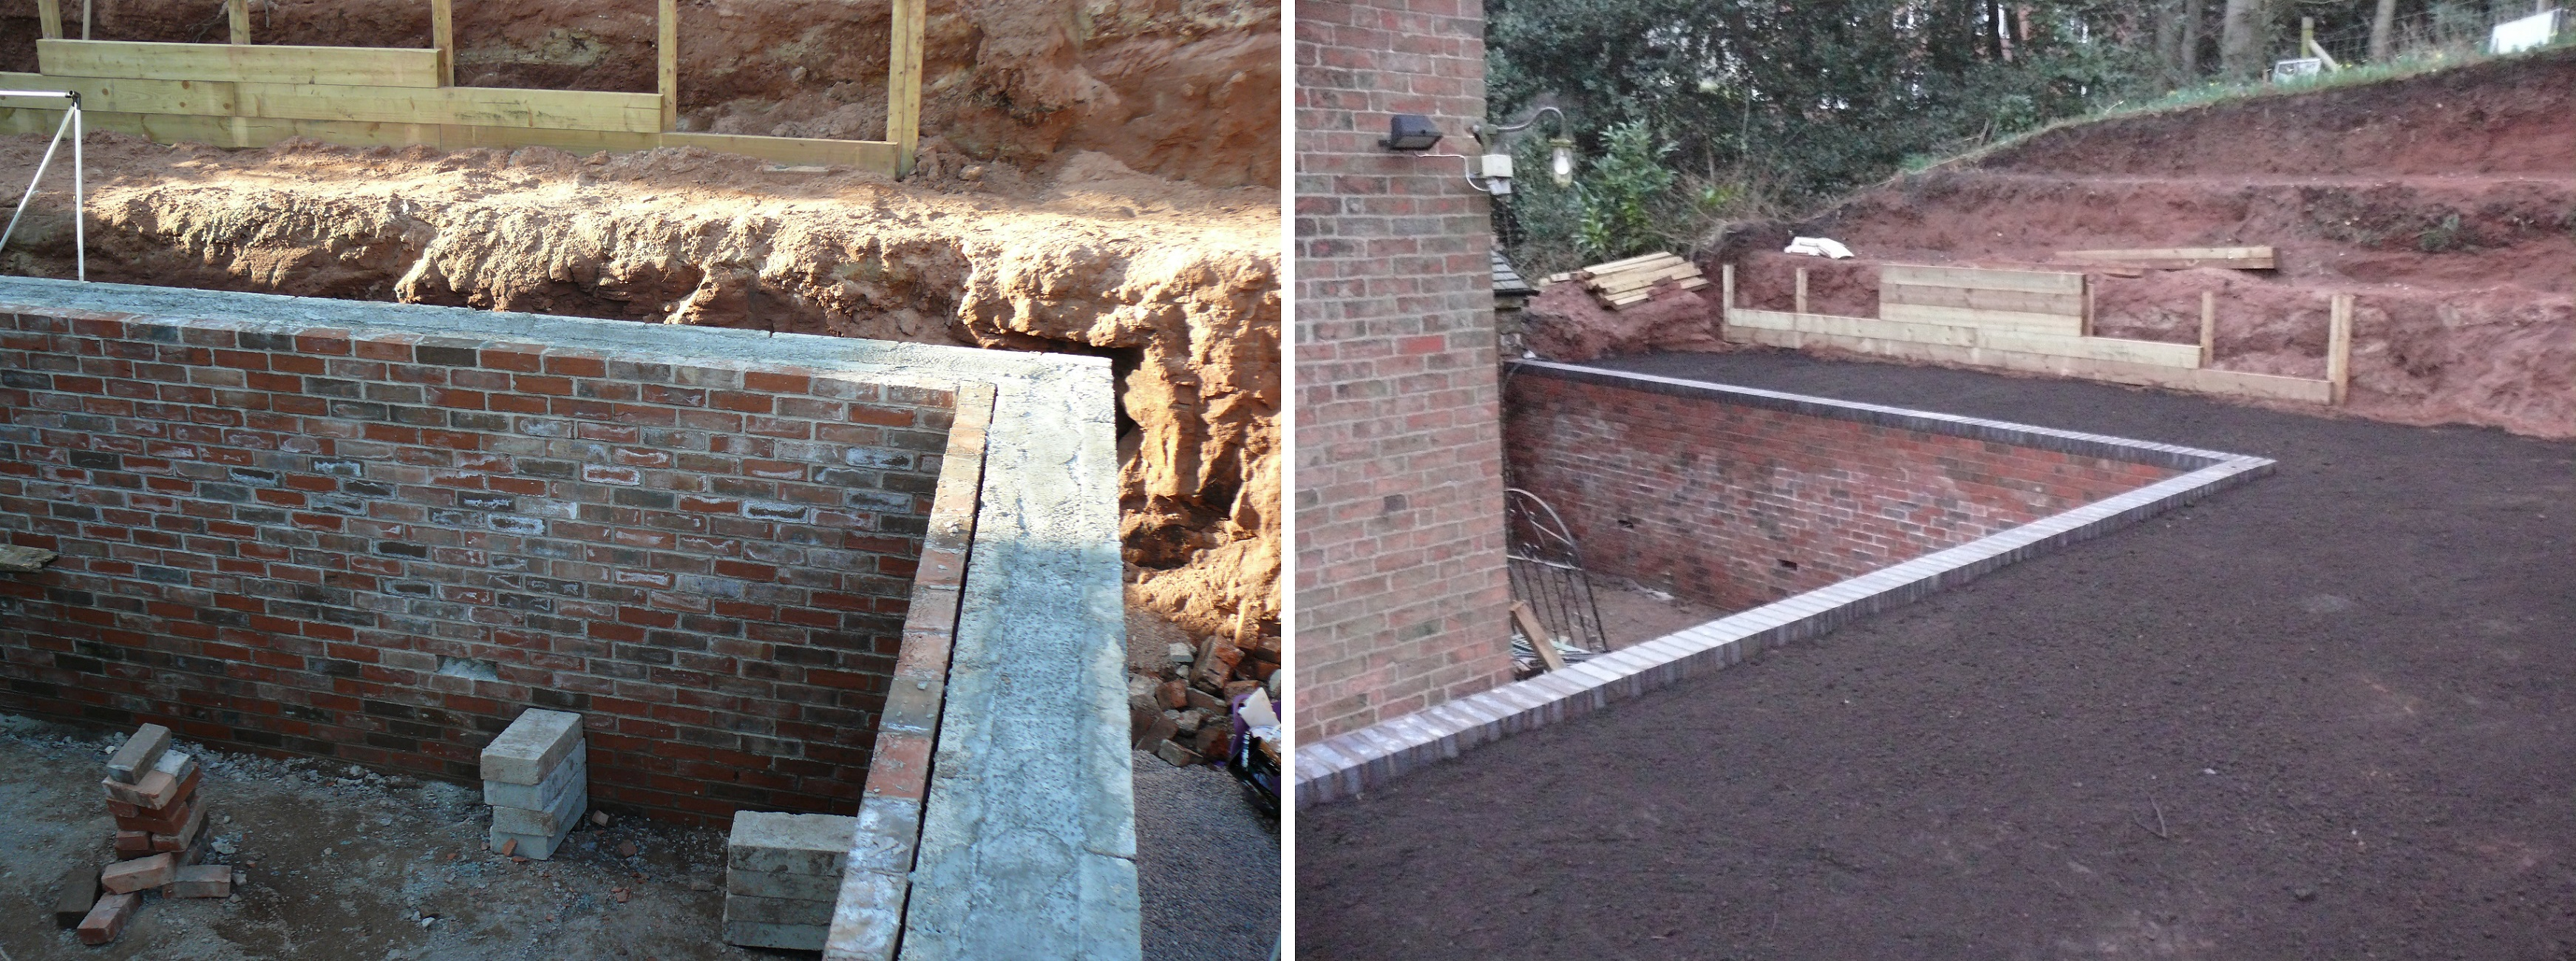 Brick Retaining Wall and Levelled Top Soil - Landscaping in Cheadle, Staffordshire